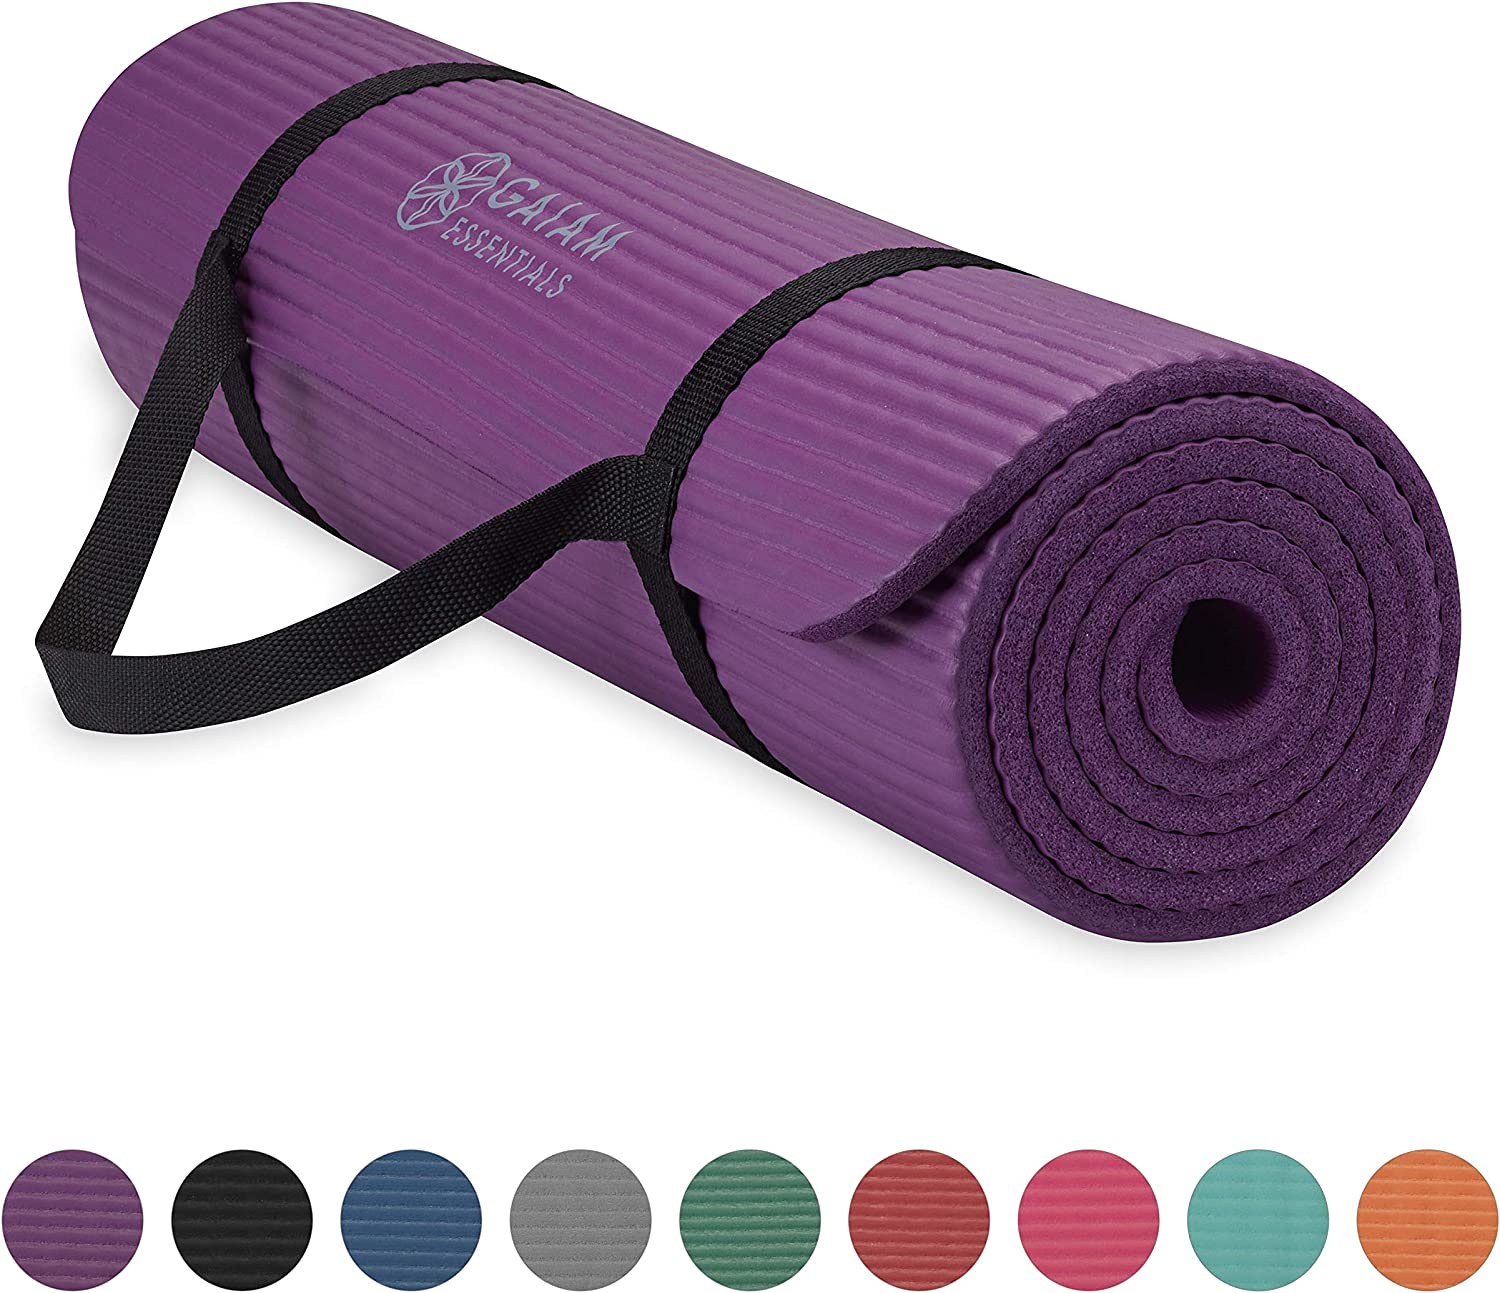 Gaiam Essentials Thick Yoga Mat Fitness & Exercise Mat with Easy-Cinch Yoga Mat Carrier Strap, 72